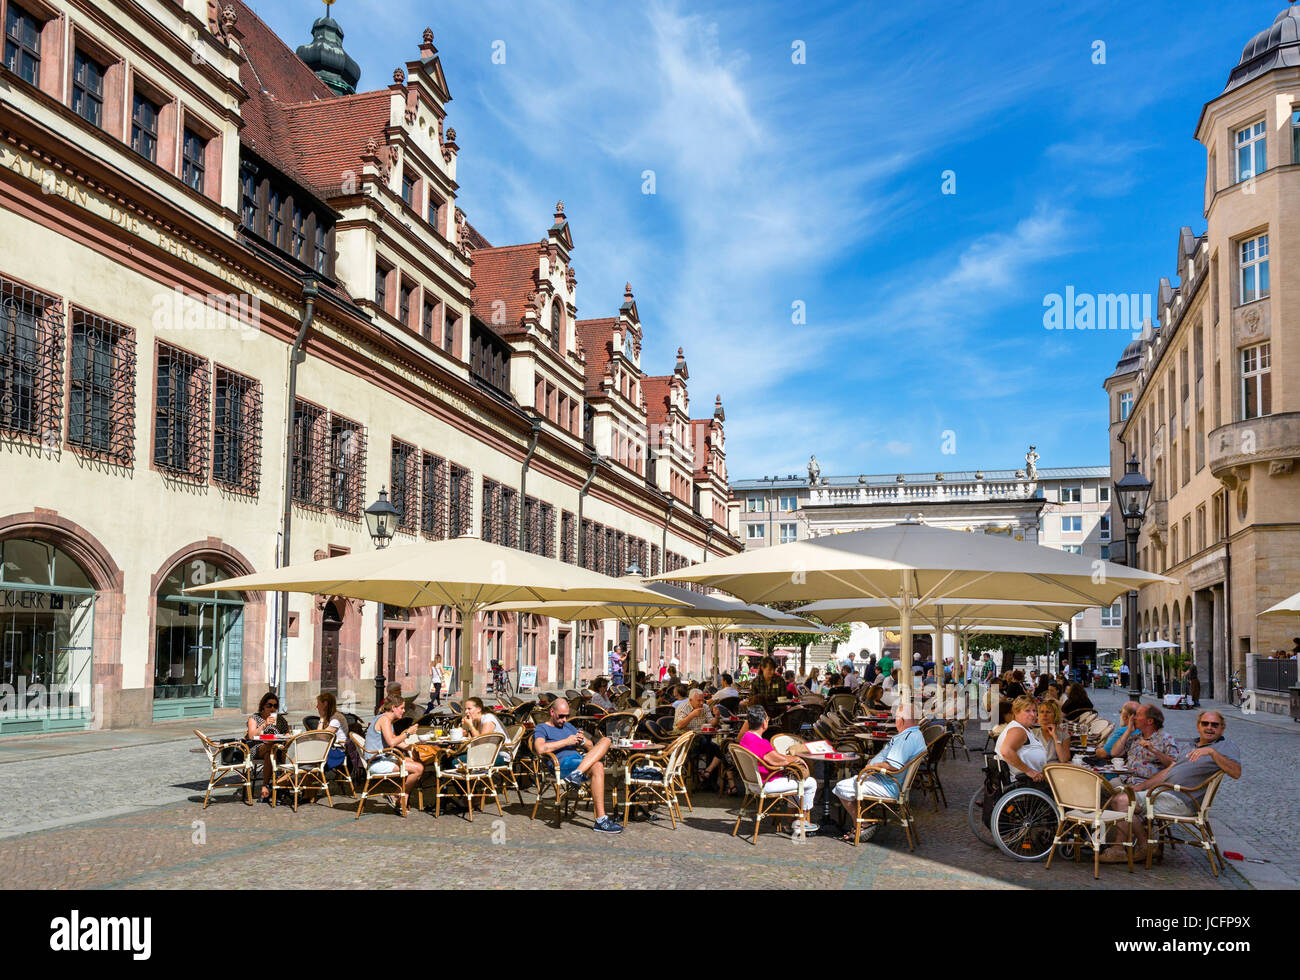 Sidewalk cafe in the Naschmarkt behind the Altes Rathaus (Old Town Hall) with the Old Bourse behind, Leipzig, Saxony, - Stock Image